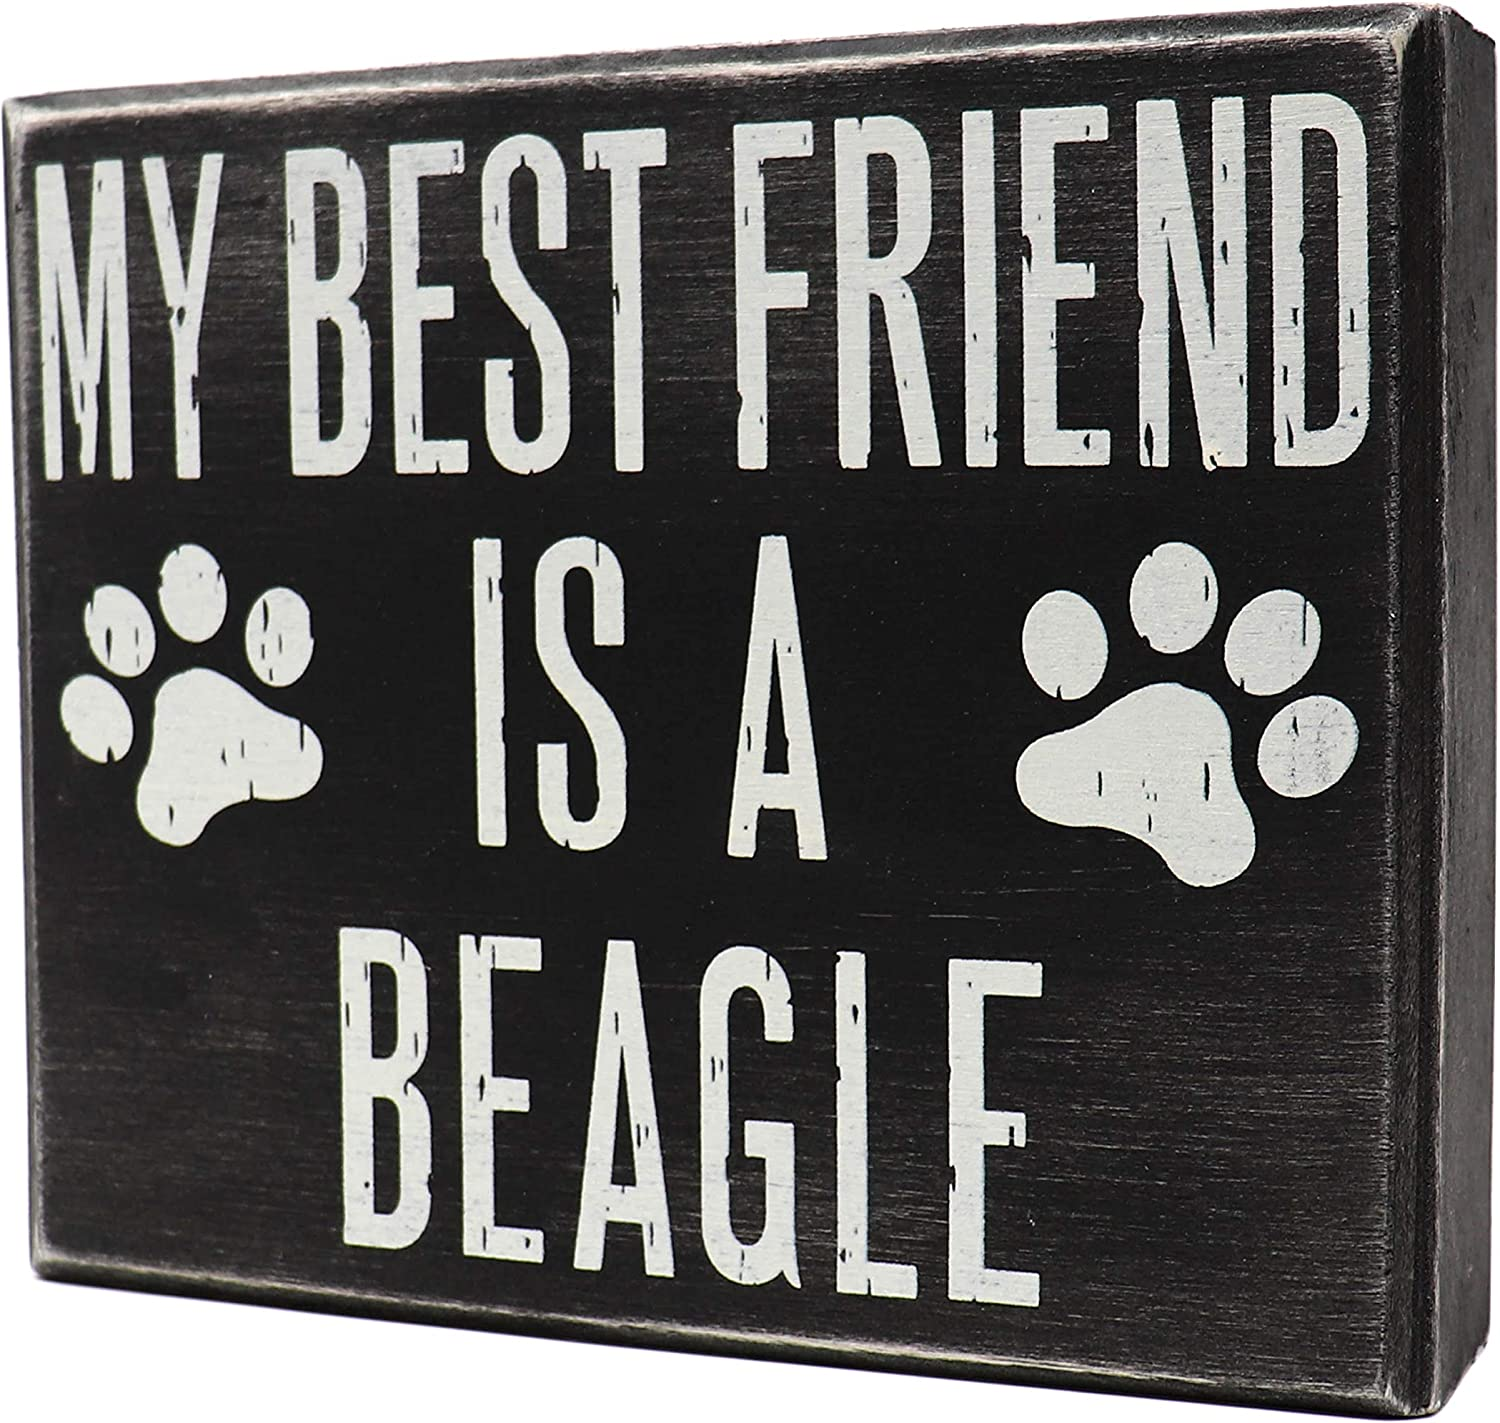 JennyGems - My Best Friend is a Beagle- Wooden Stand Up Box Sign - Beagle Moms Gift - Beagle Decor Signs - Rustic Farmhouse Box Beagle Sign, 6 x 5 x 1.5 inches, Blue tick Beagle, Shelf Knick Knacks